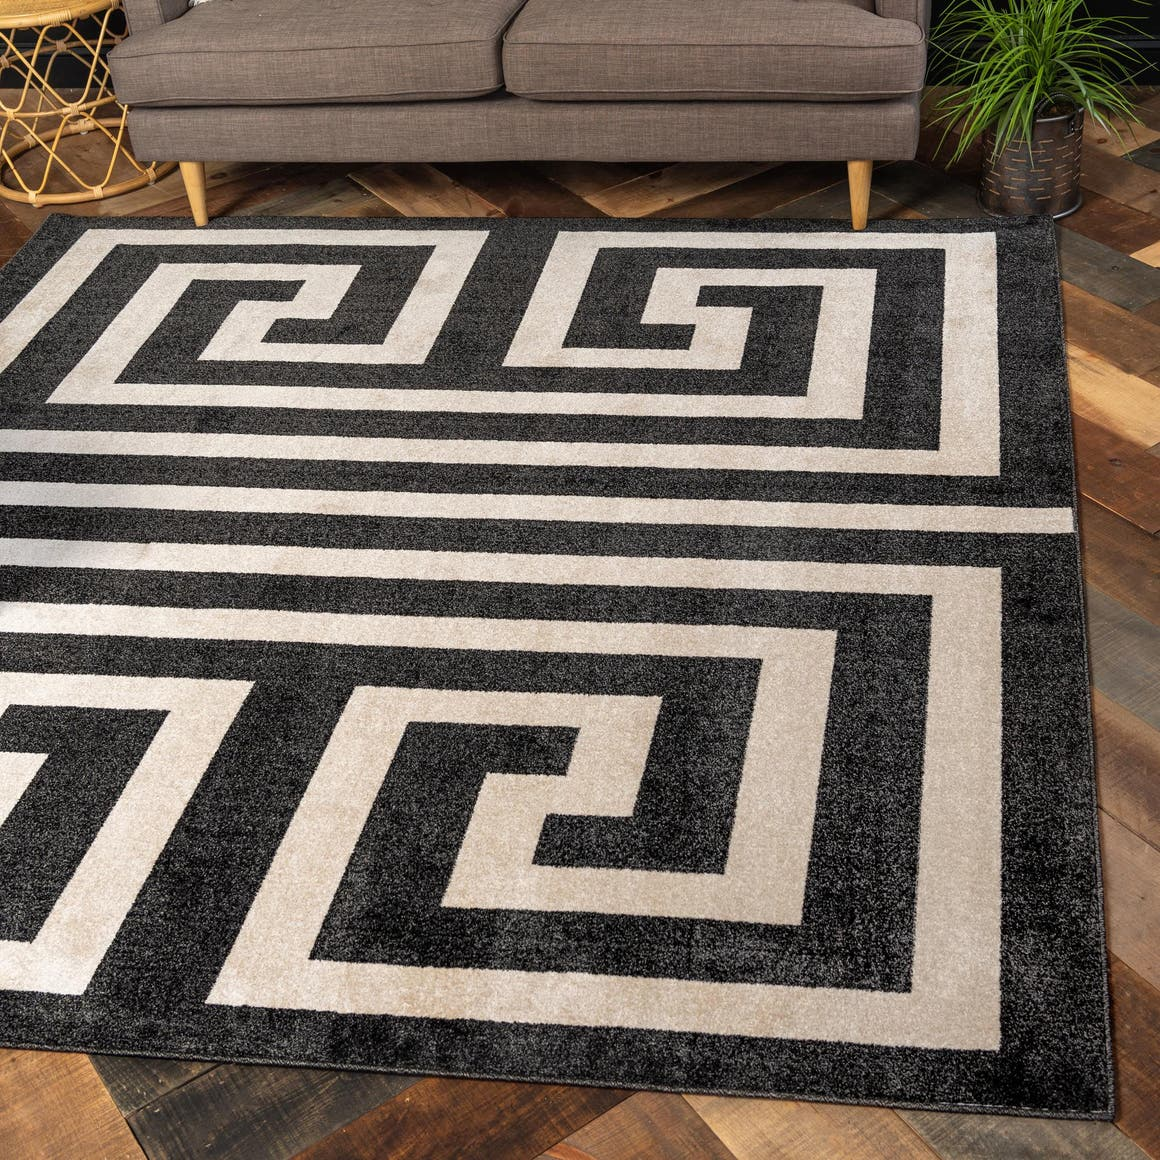 8' x 8' Greek Key Square Rug main image